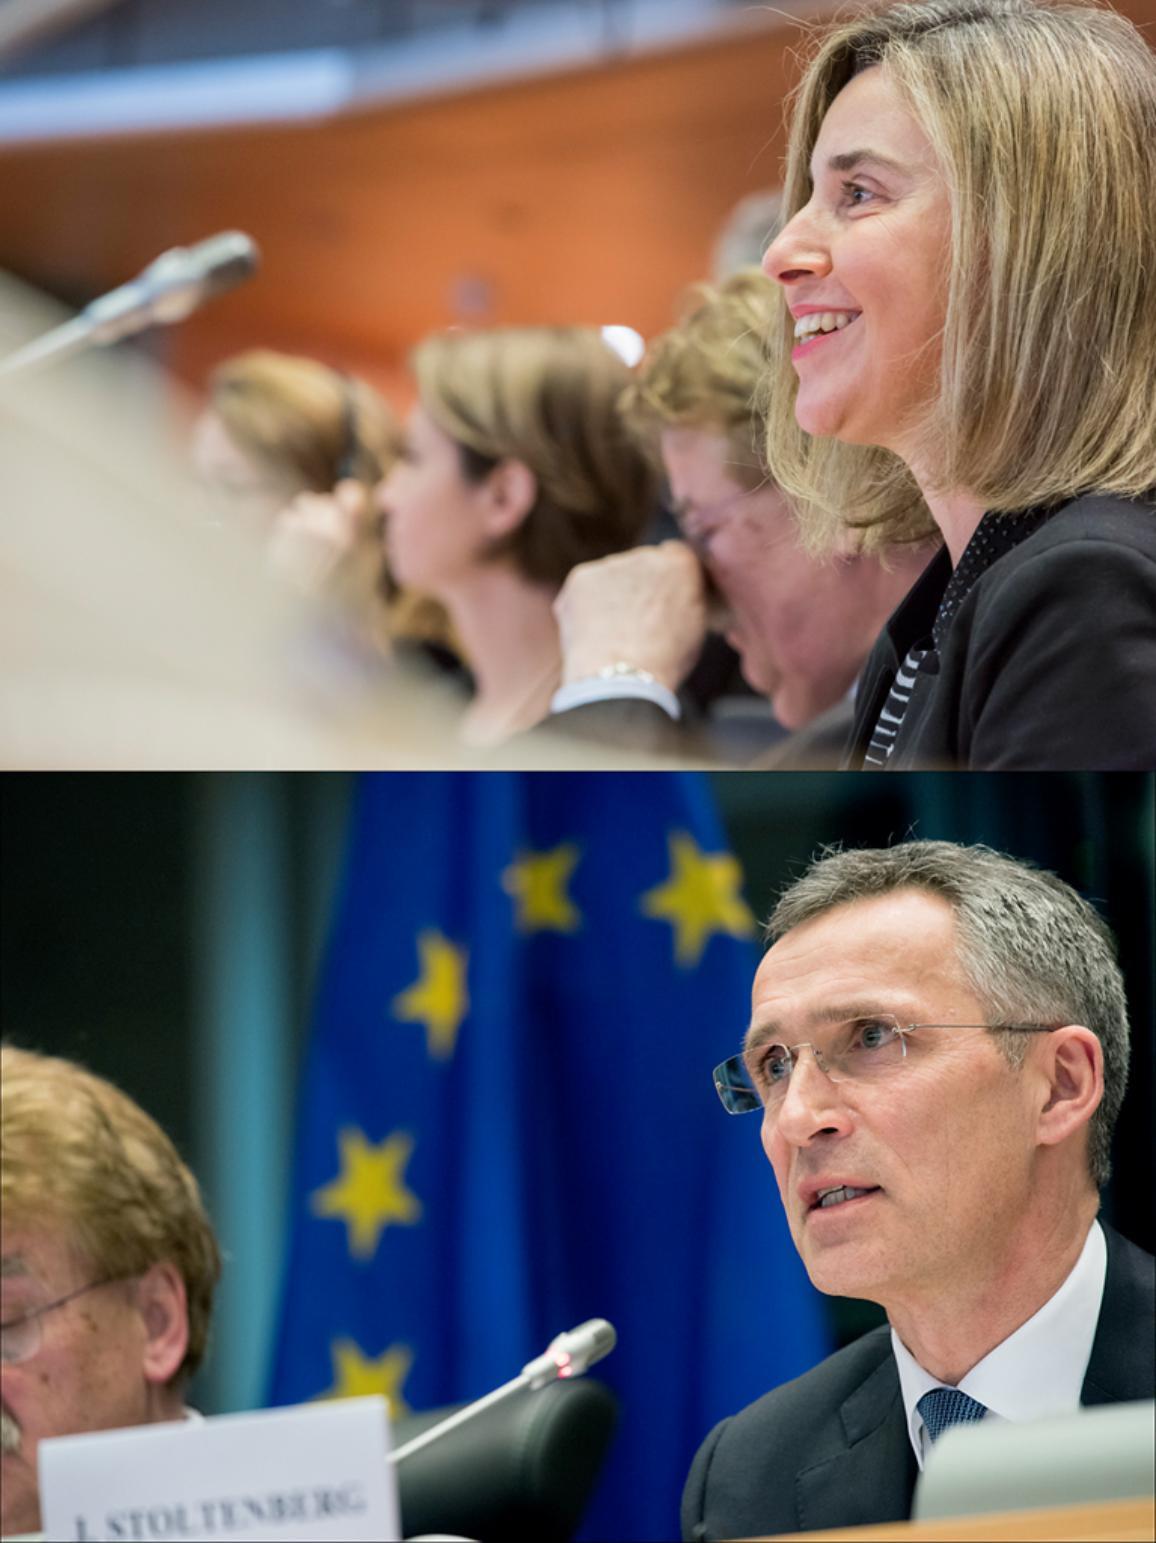 AFET Committee Meeting. Exchange of views with VP/HR Federica MOGHERINI on the conflicts in the MENA region and the refugee crisis and with Nato Secretary General Jean Stoltenberg